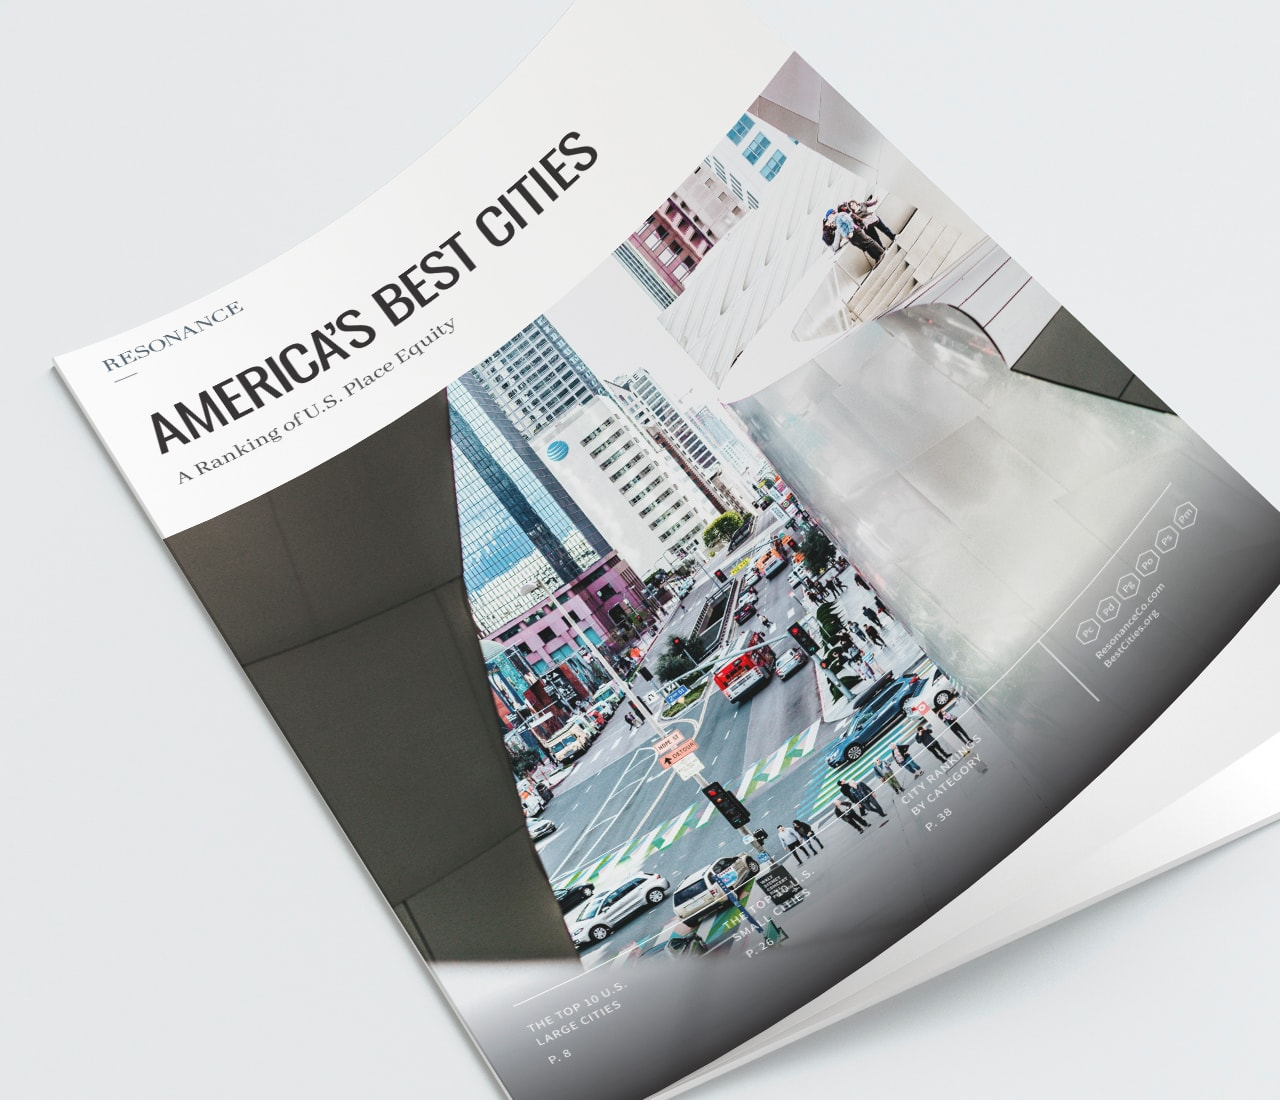 America's Best Cities